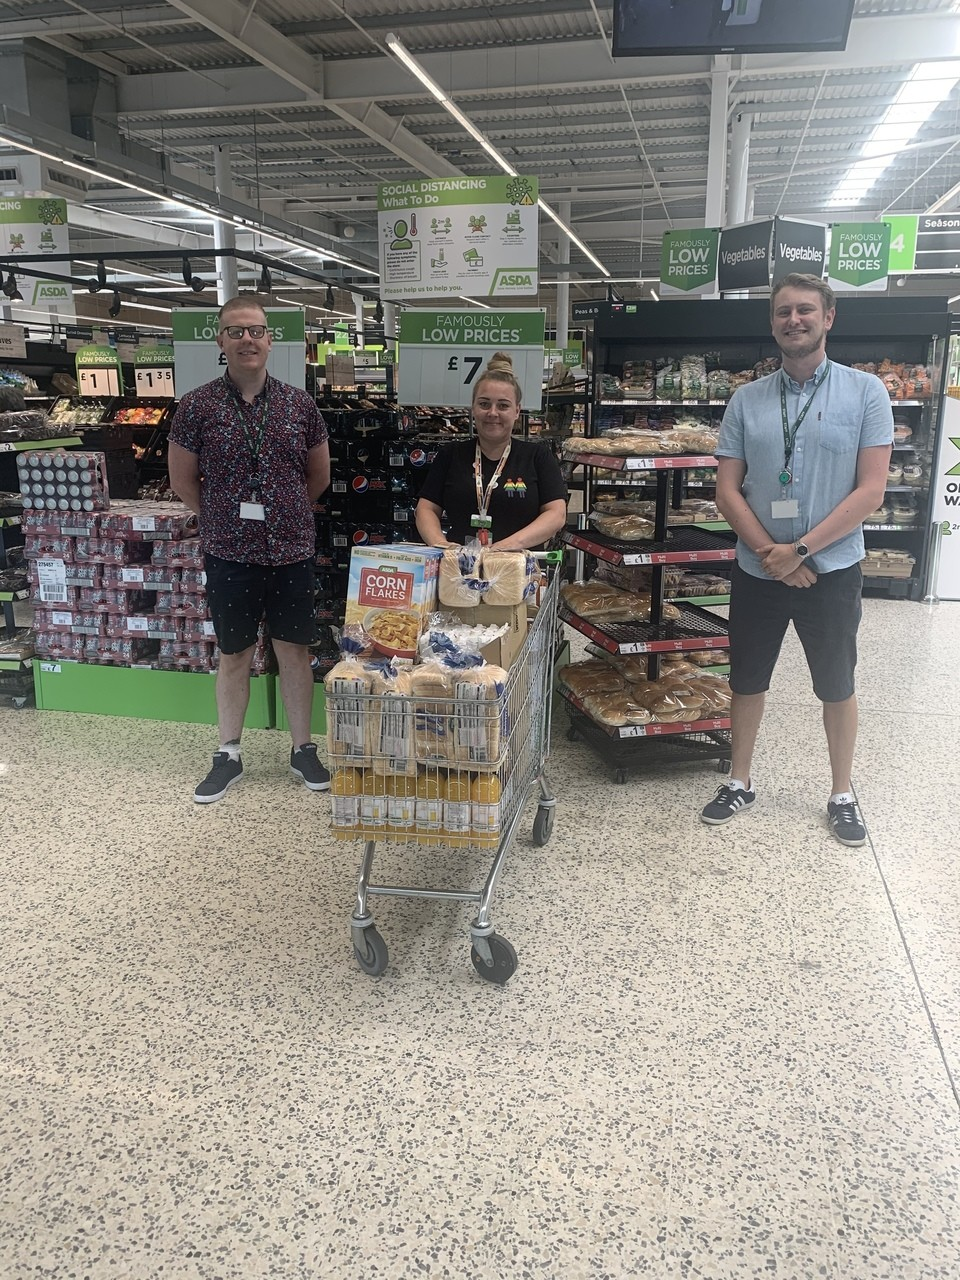 Stephen Longfellow Academy donation | Asda Middleton